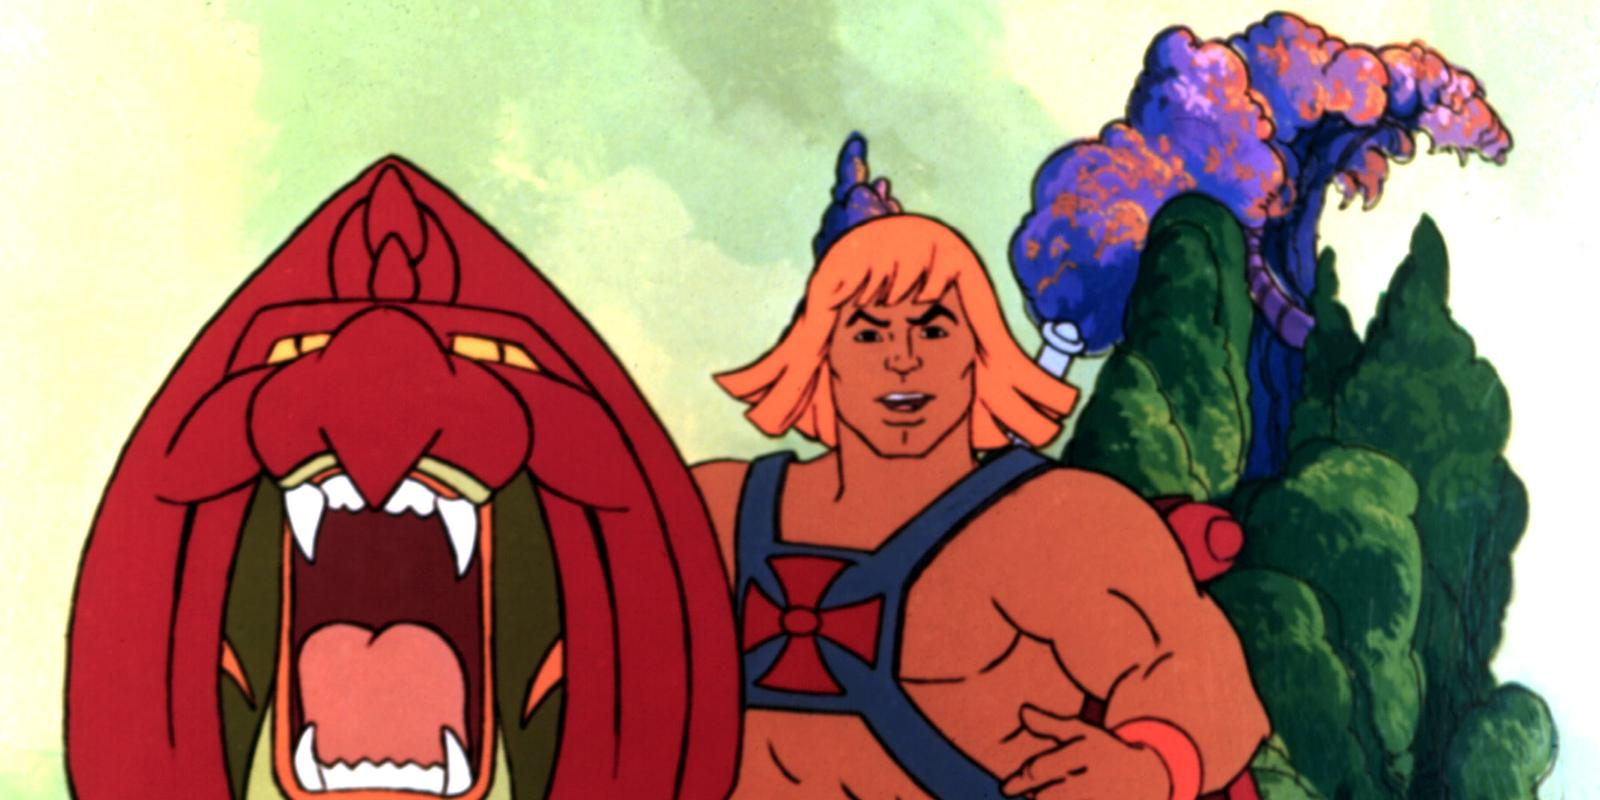 He Man    Thundercats  and more  Greatest cartoons of the  80s   90s  He Man    Thundercats  and more  Greatest cartoons of the  80s   90s